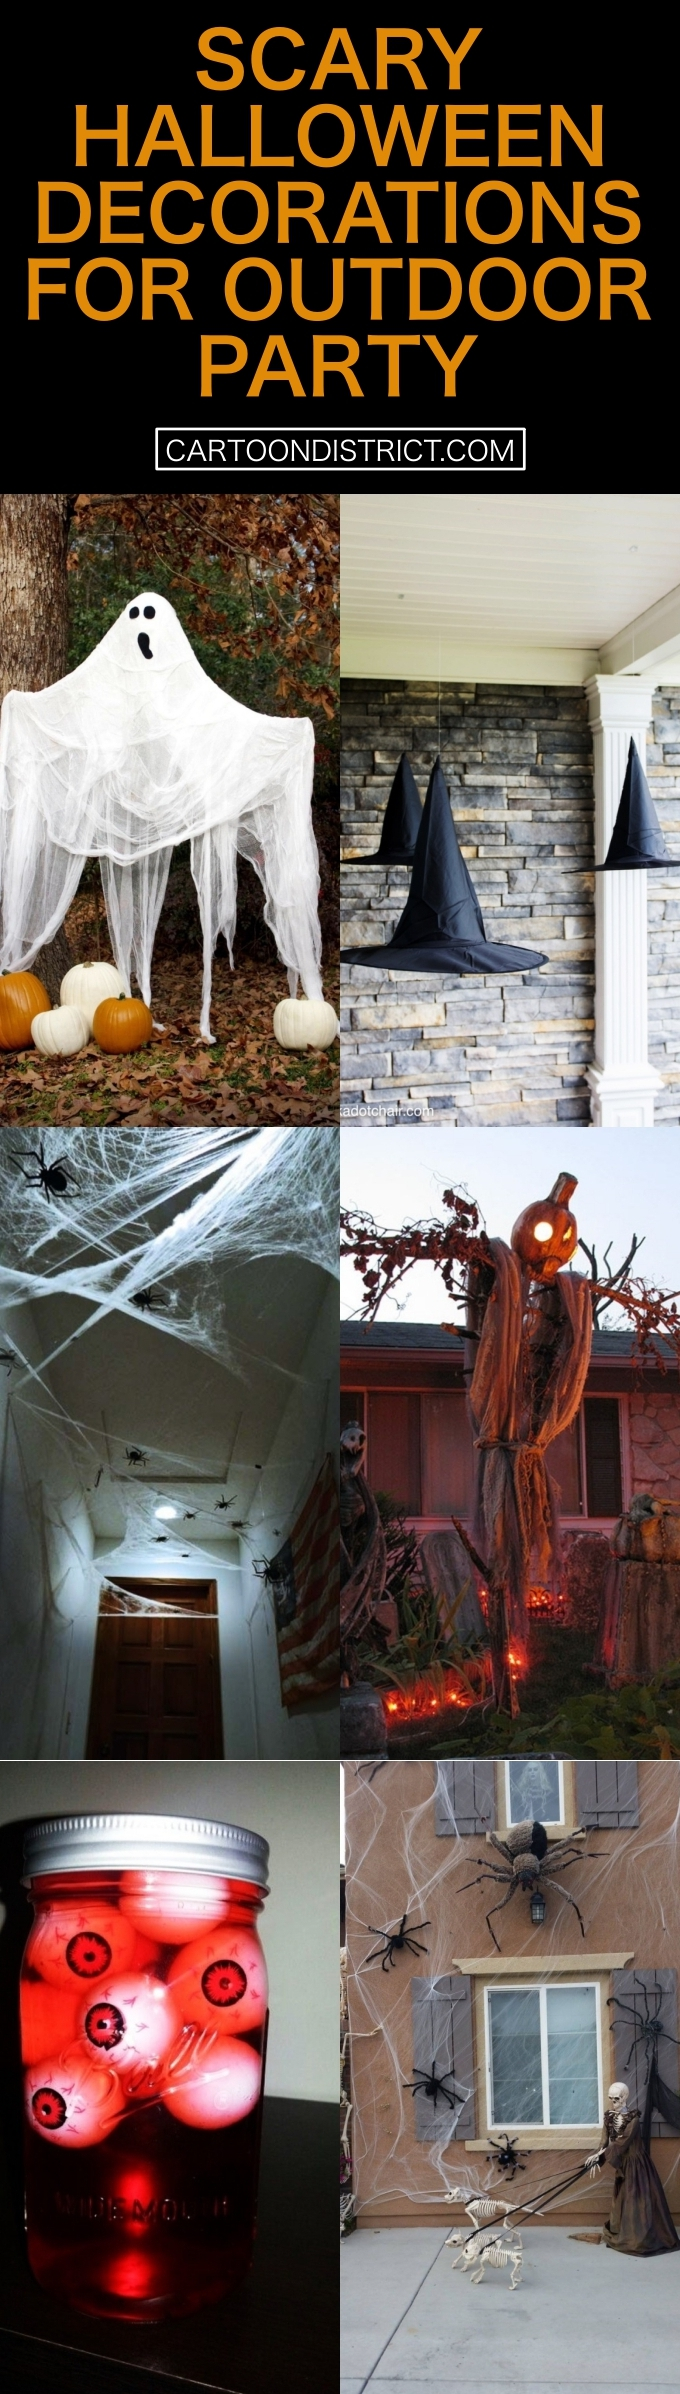 SCARY-HALLOWEEN-DECORATIONS-FOR-OUTDOOR-PARTY